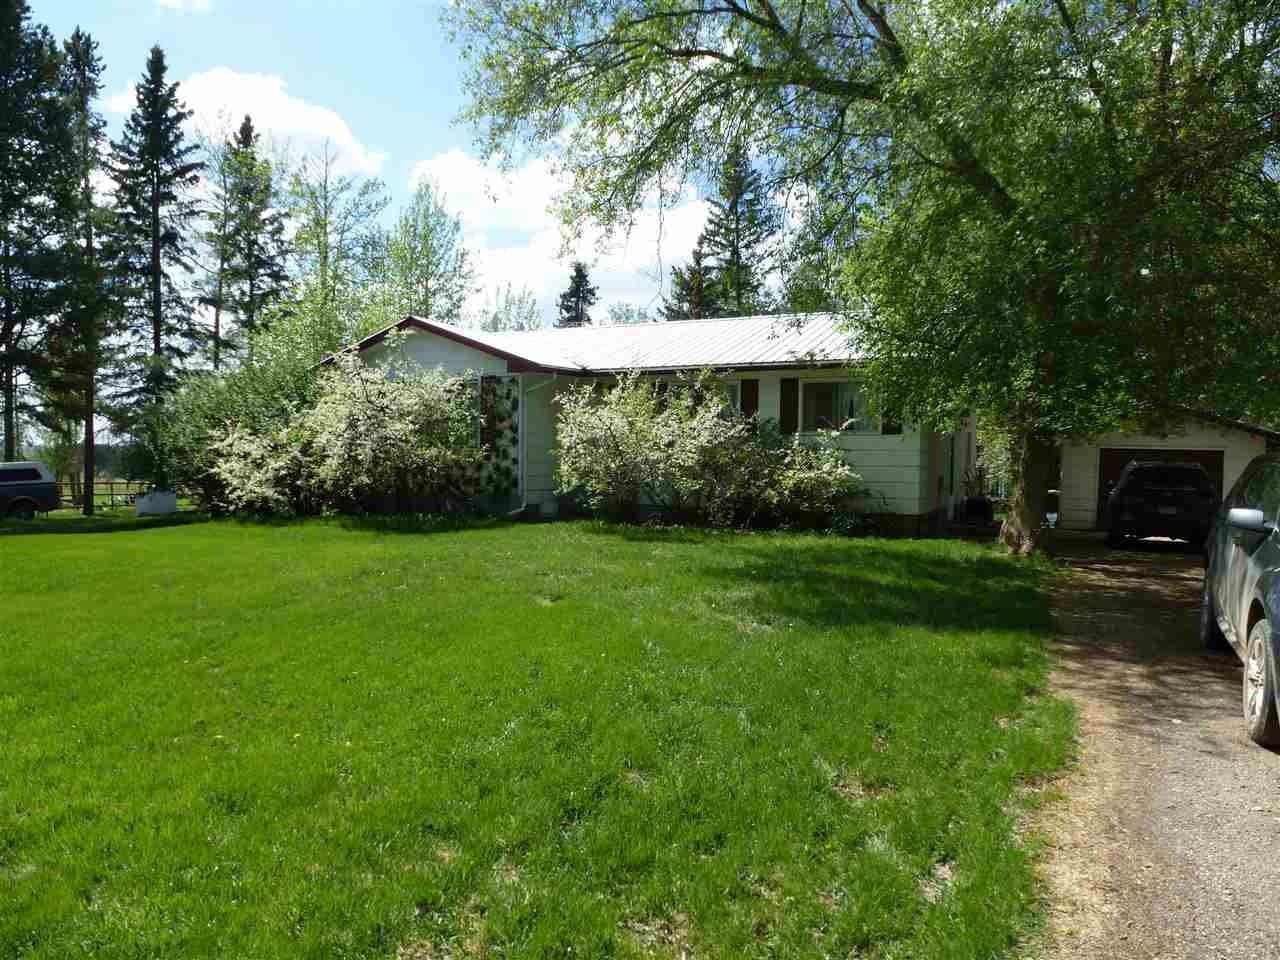 Main Photo: 462036A Hwy 13A: Rural Wetaskiwin County House for sale : MLS®# E4111893